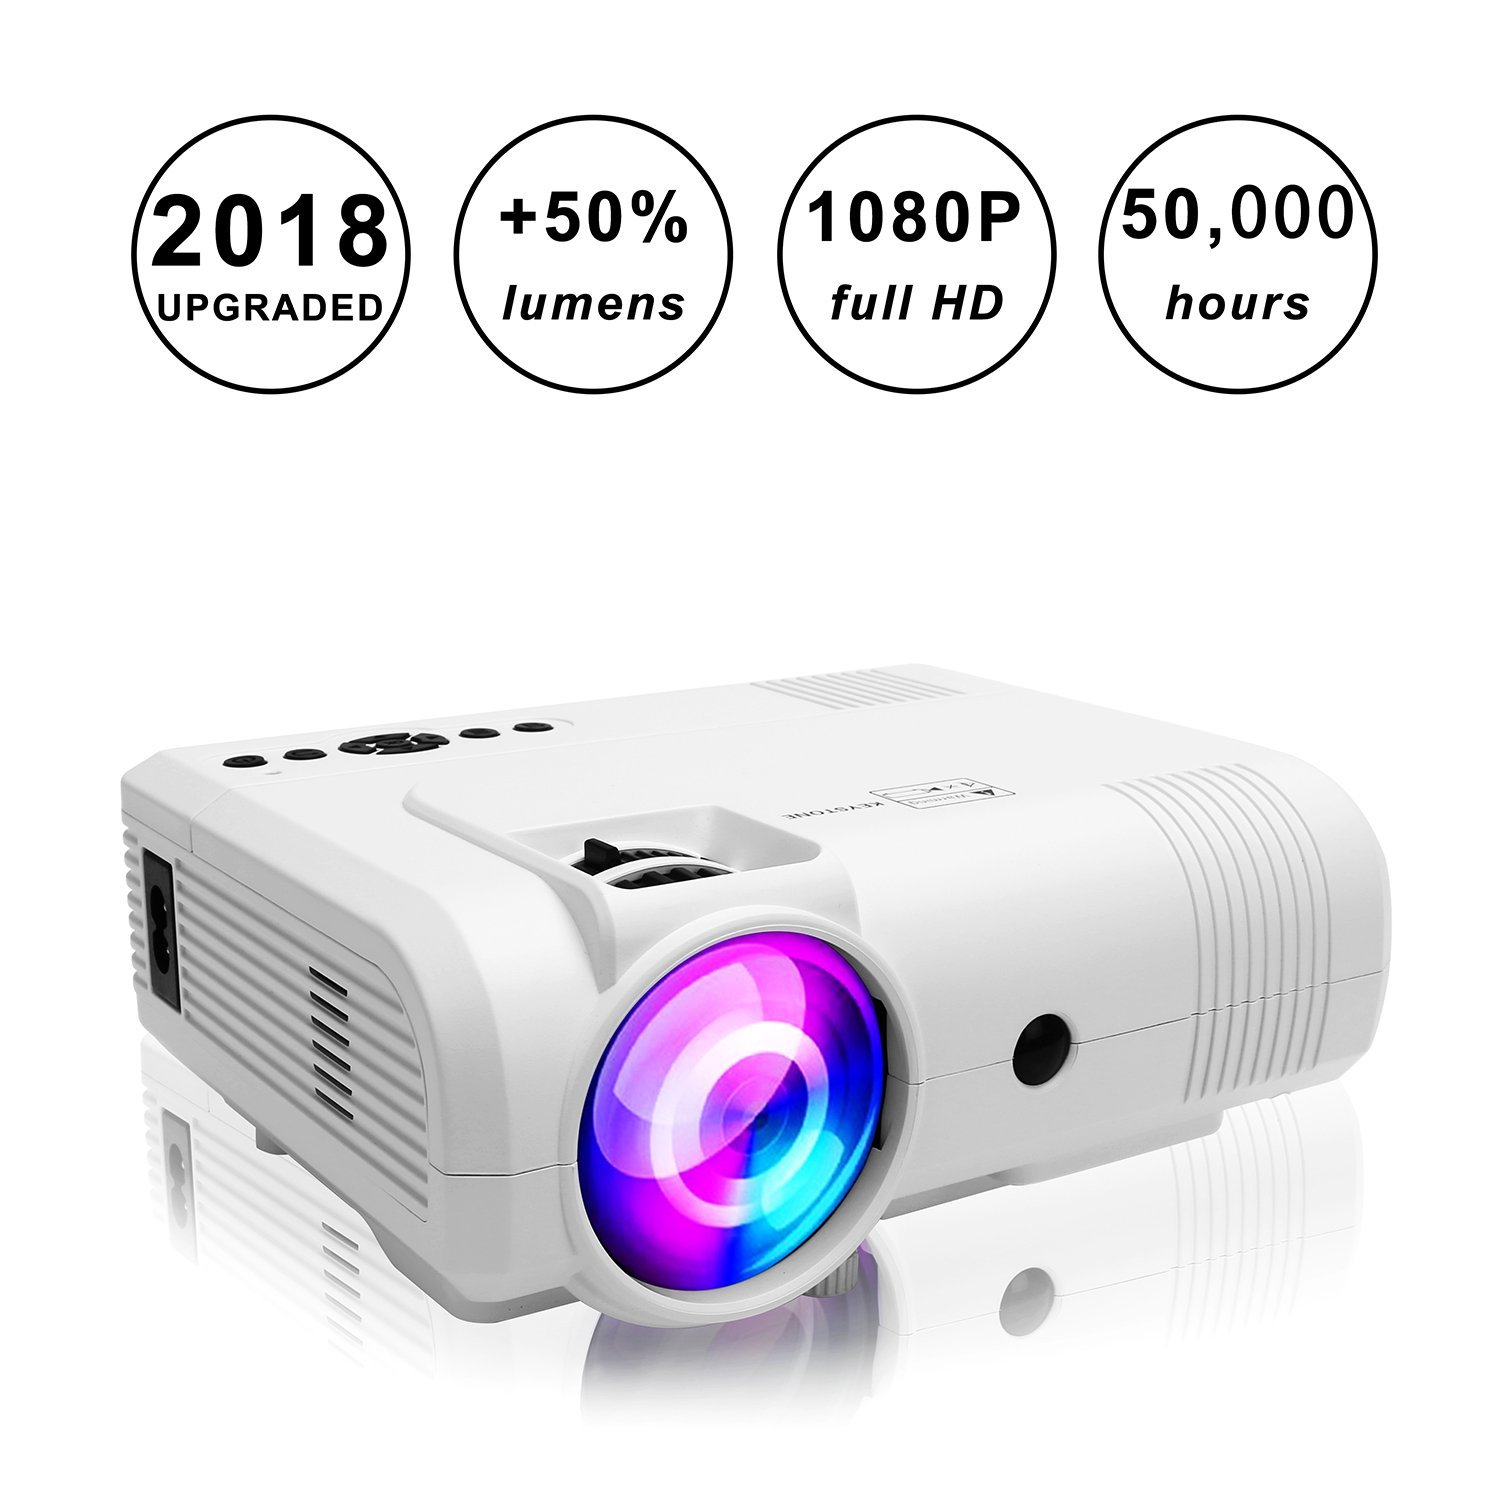 Projectors,PoFun(2018 Upgraded)+50% Lumens Mini Portable Projector,50,000 Hour LED Full HD 1080P Video Projector with 150''Display and Compatible Fire TV Stick,HDMI,VGA,AV,SD Used in Phone,Laptop